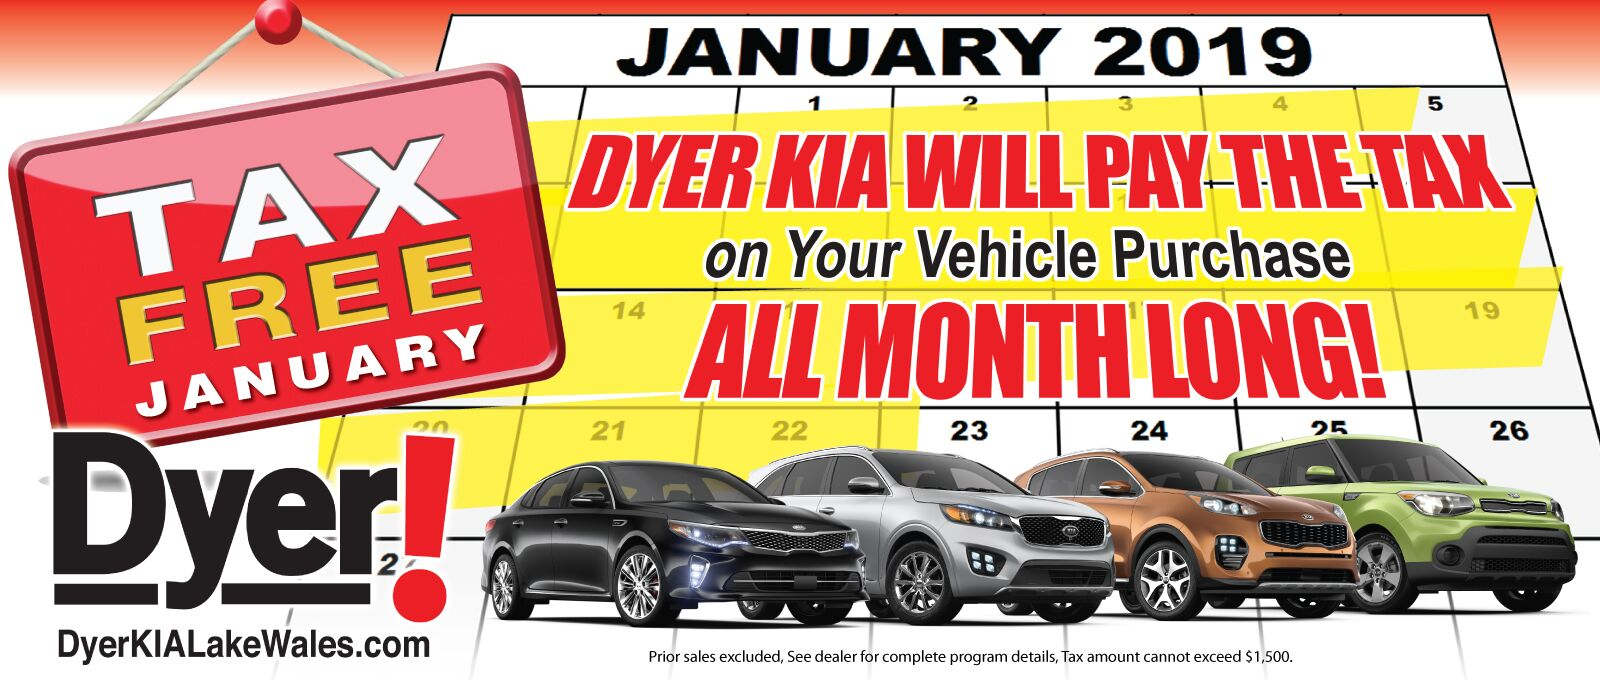 DYER KIA WILL PAY THE TAX